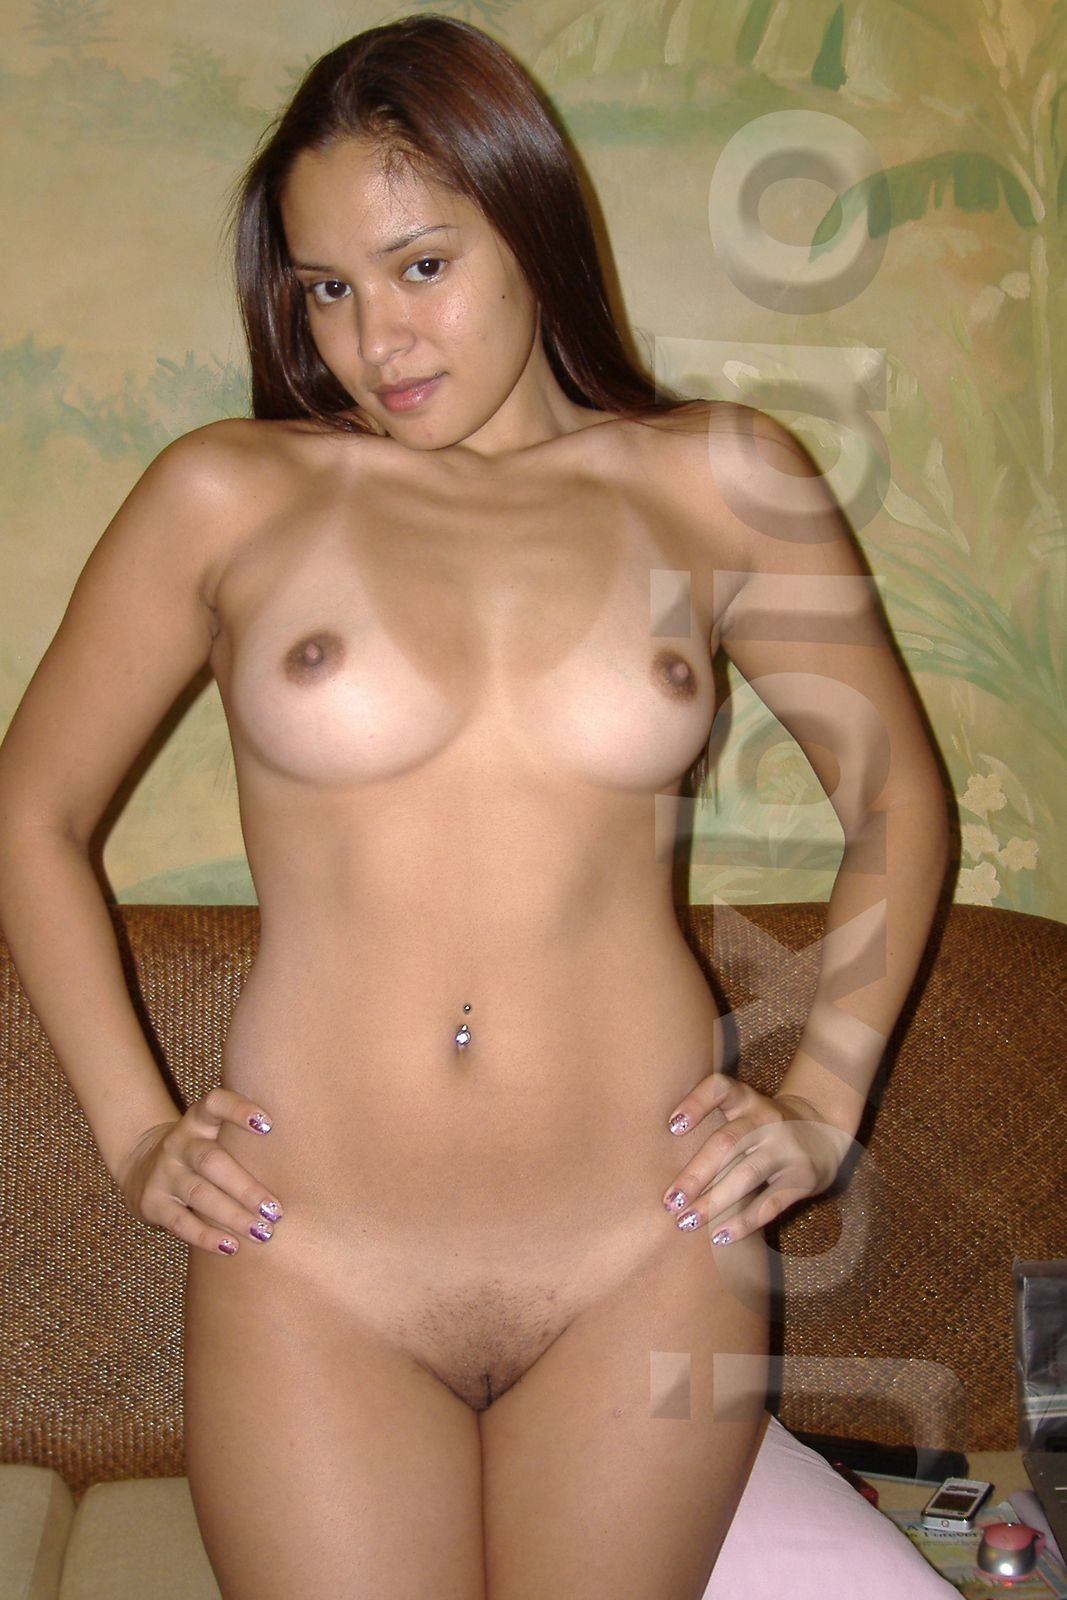 Yahoo pinay milf part 3 of 4 Part 5